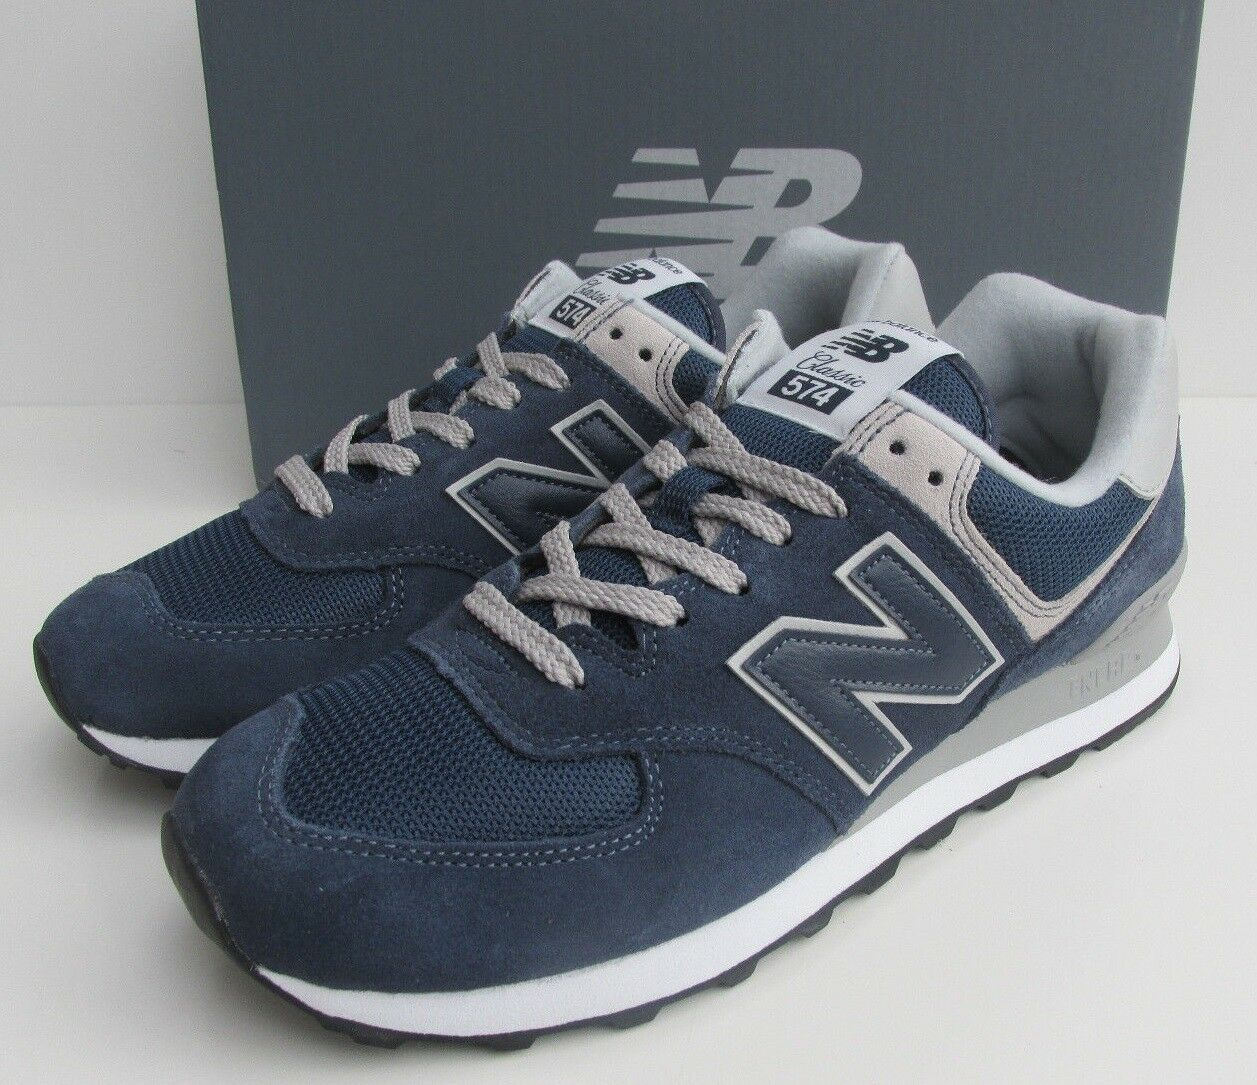 NEW IN BOX Size 12 and a half New Balance 574 v2 men's navy bluee sports trainers